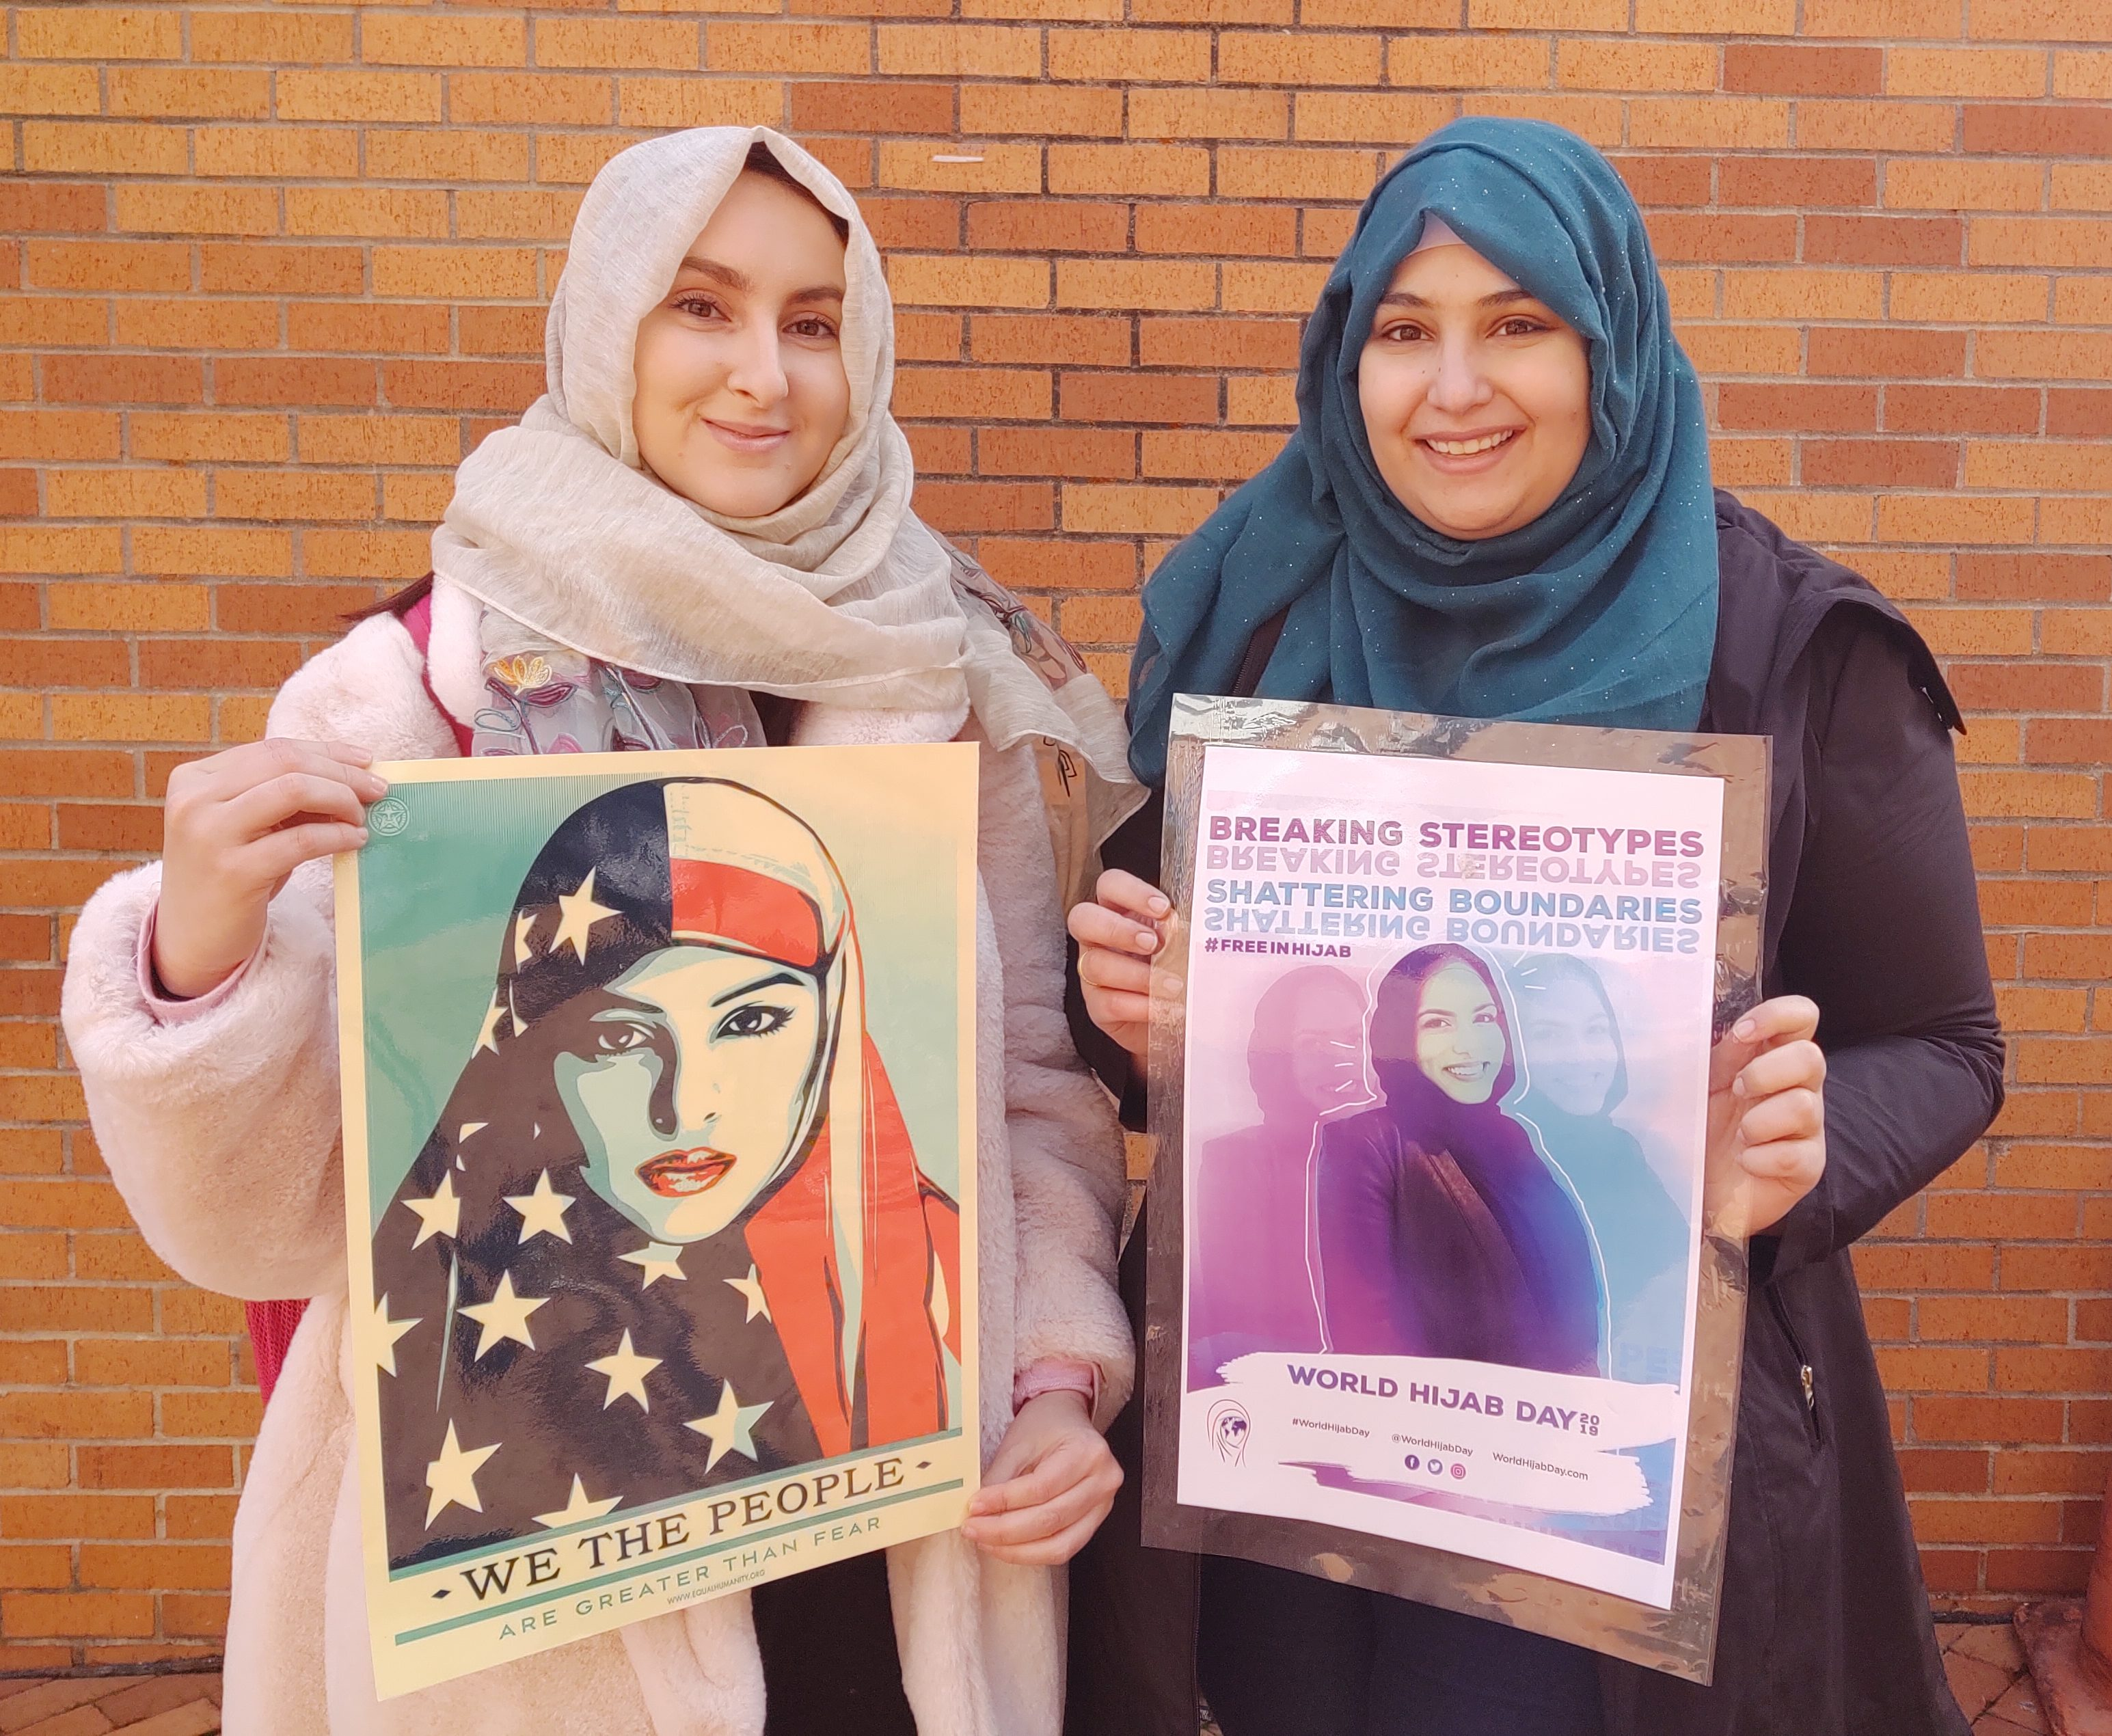 "Two female students wearing the hijab traditional head covering hold World Hijab Day posters that read ""We The People Are Greater Than Fear"" and ""Shattering Stereotypes, #FreeInHijab, World Hijab Day""."